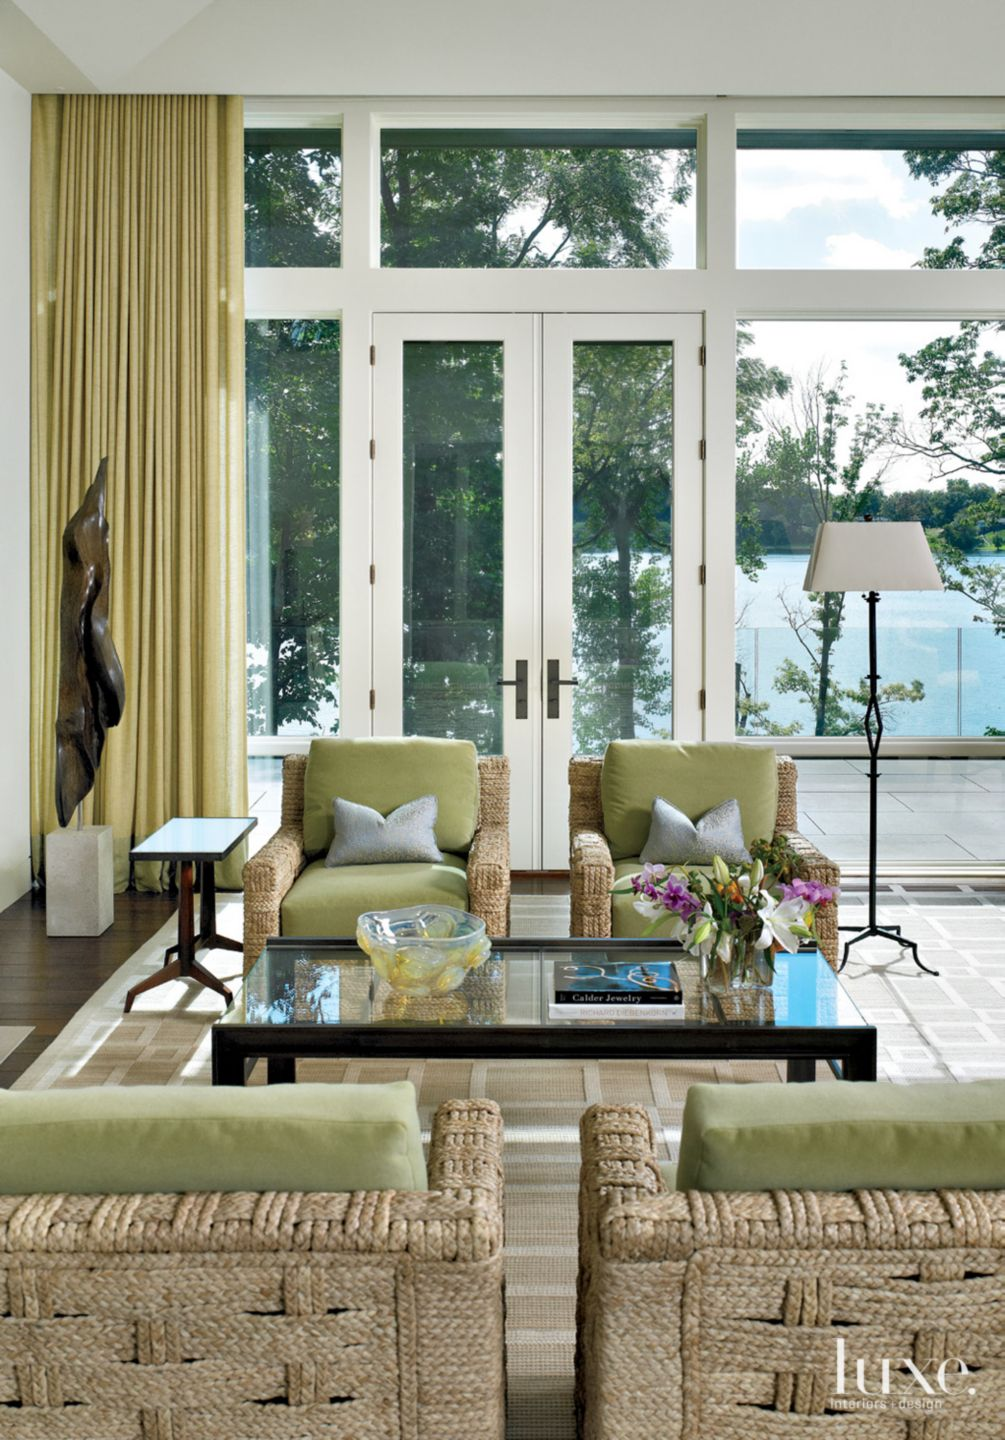 Contemporary White Sitting Area with Floor-to-Ceiling Windows